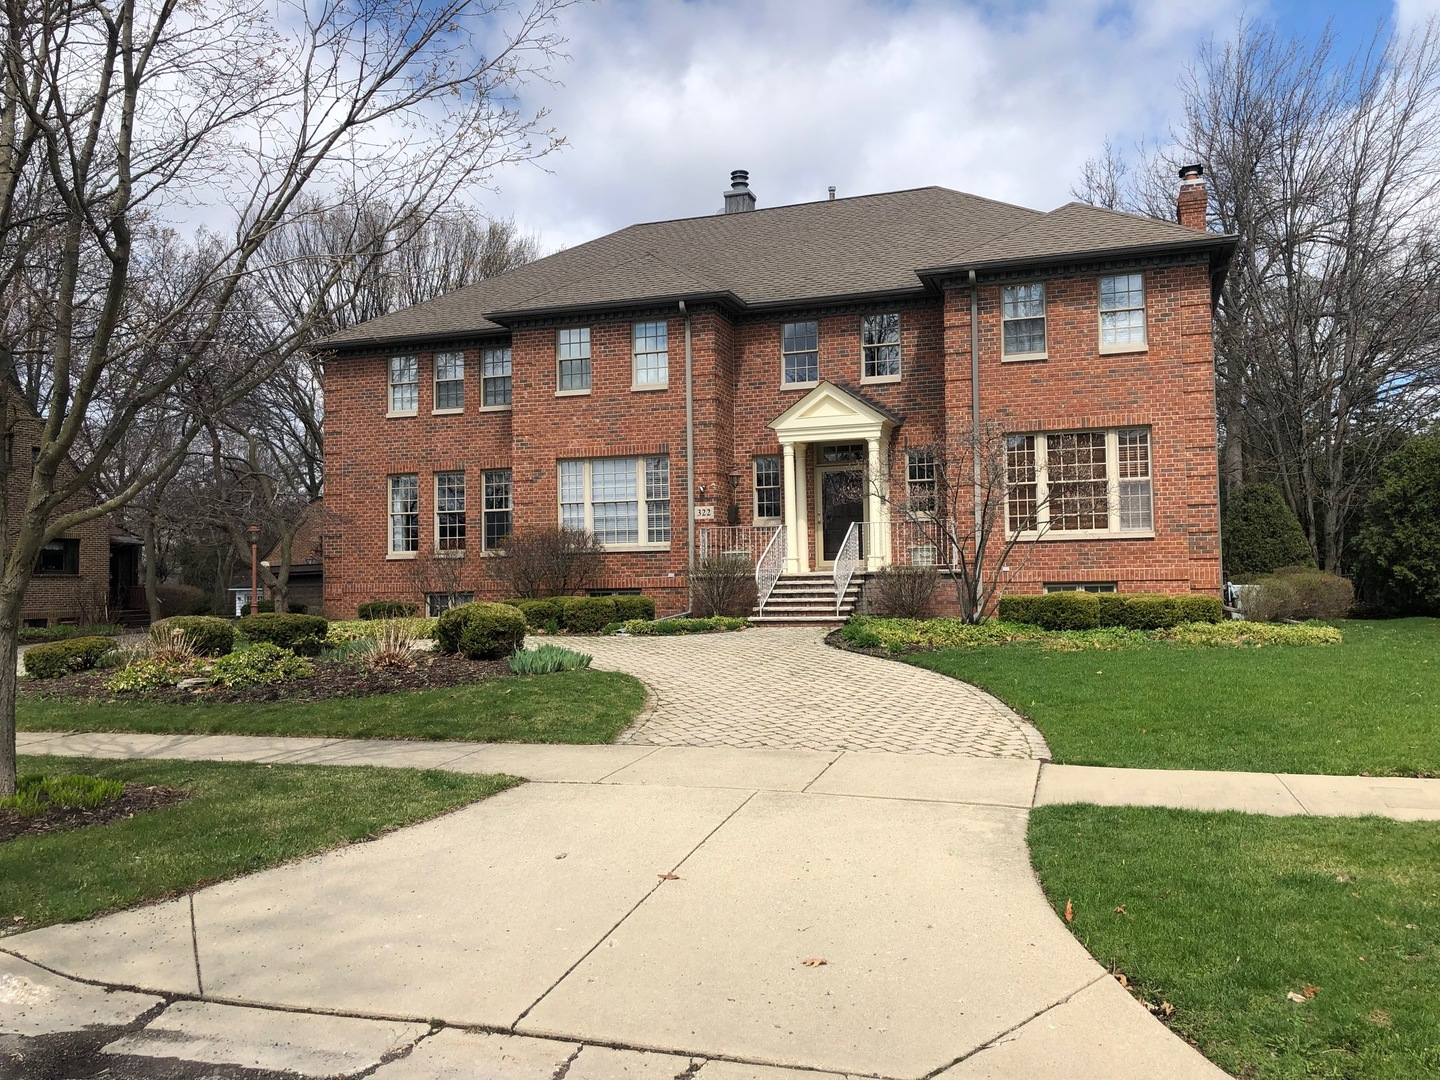 322 W sibley Avenue, Park Ridge, IL 60068